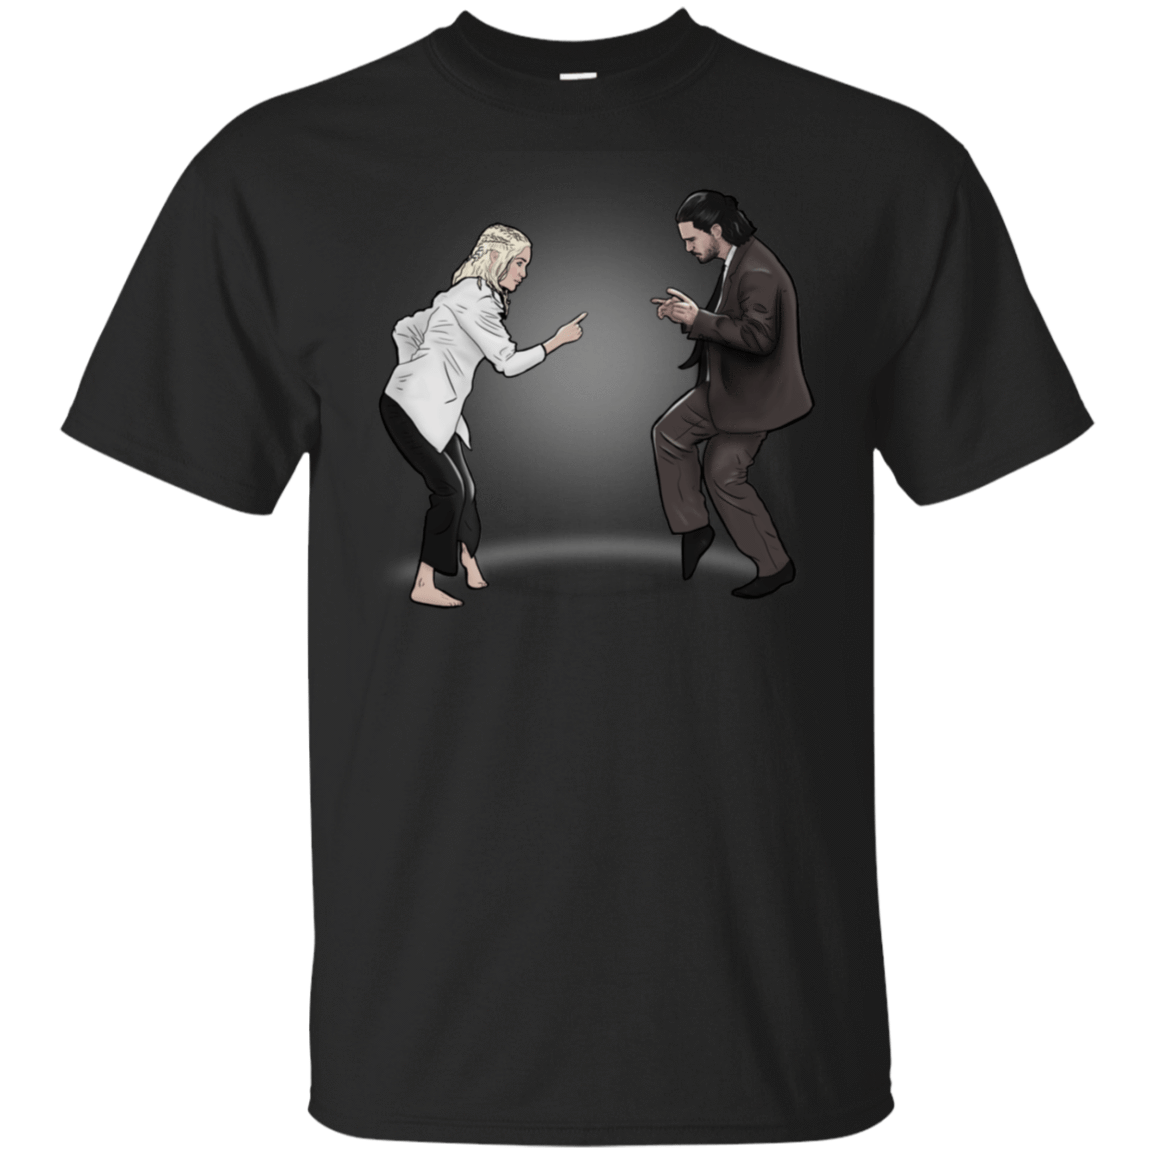 The Ballad of Jon and Dany T-Shirt